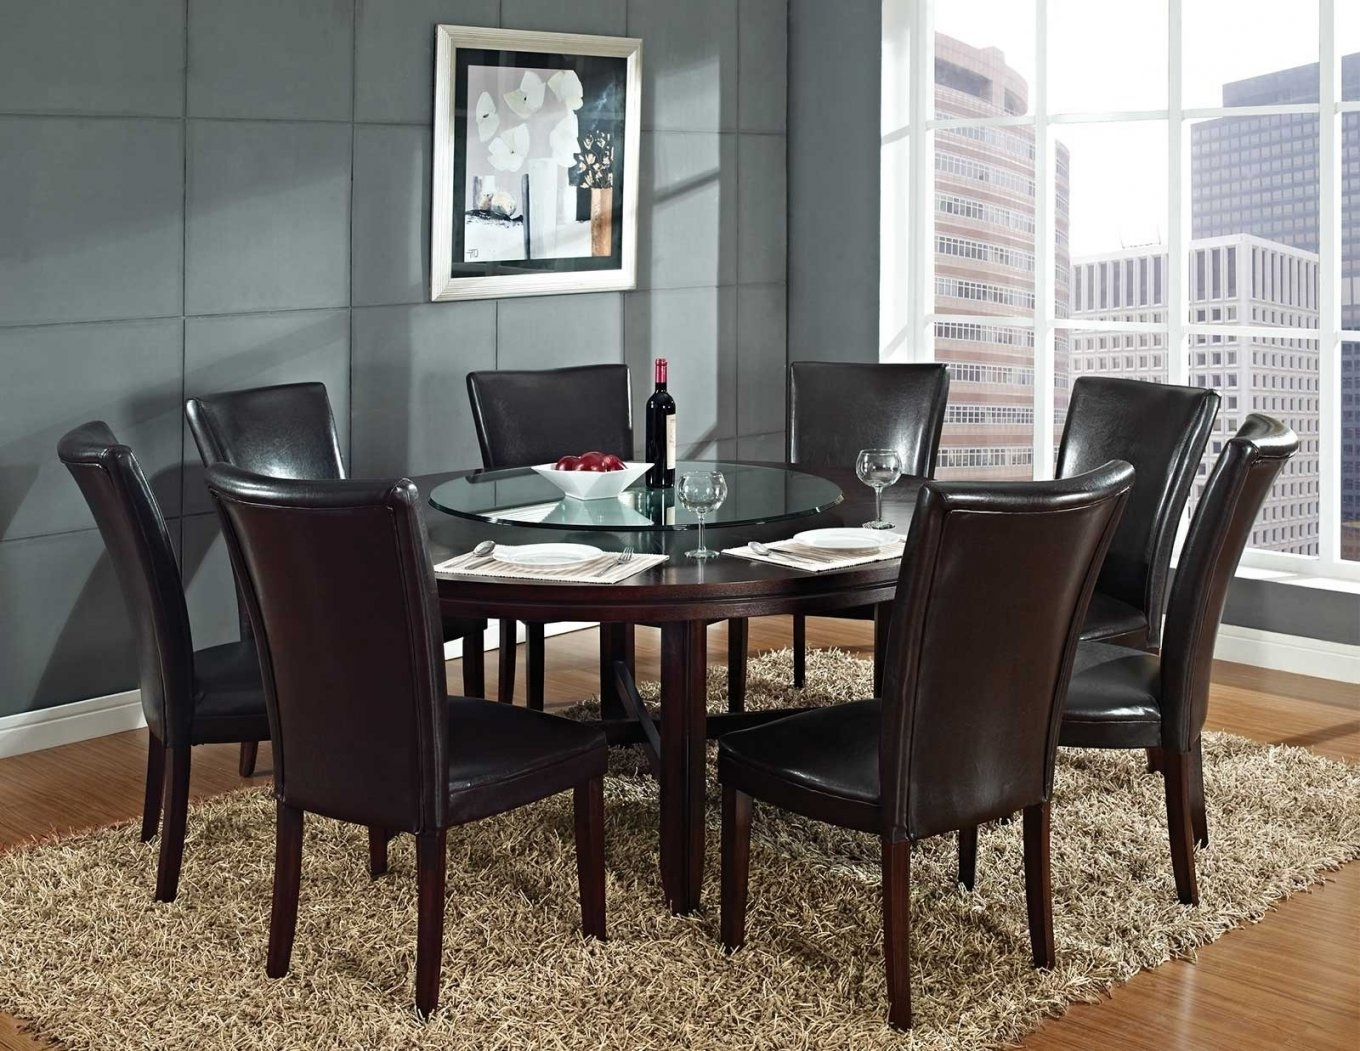 Most Current Cheap Dining Table And Chairs Set – Castrophotos With Regard To Cheap Glass Dining Tables And 6 Chairs (View 7 of 25)